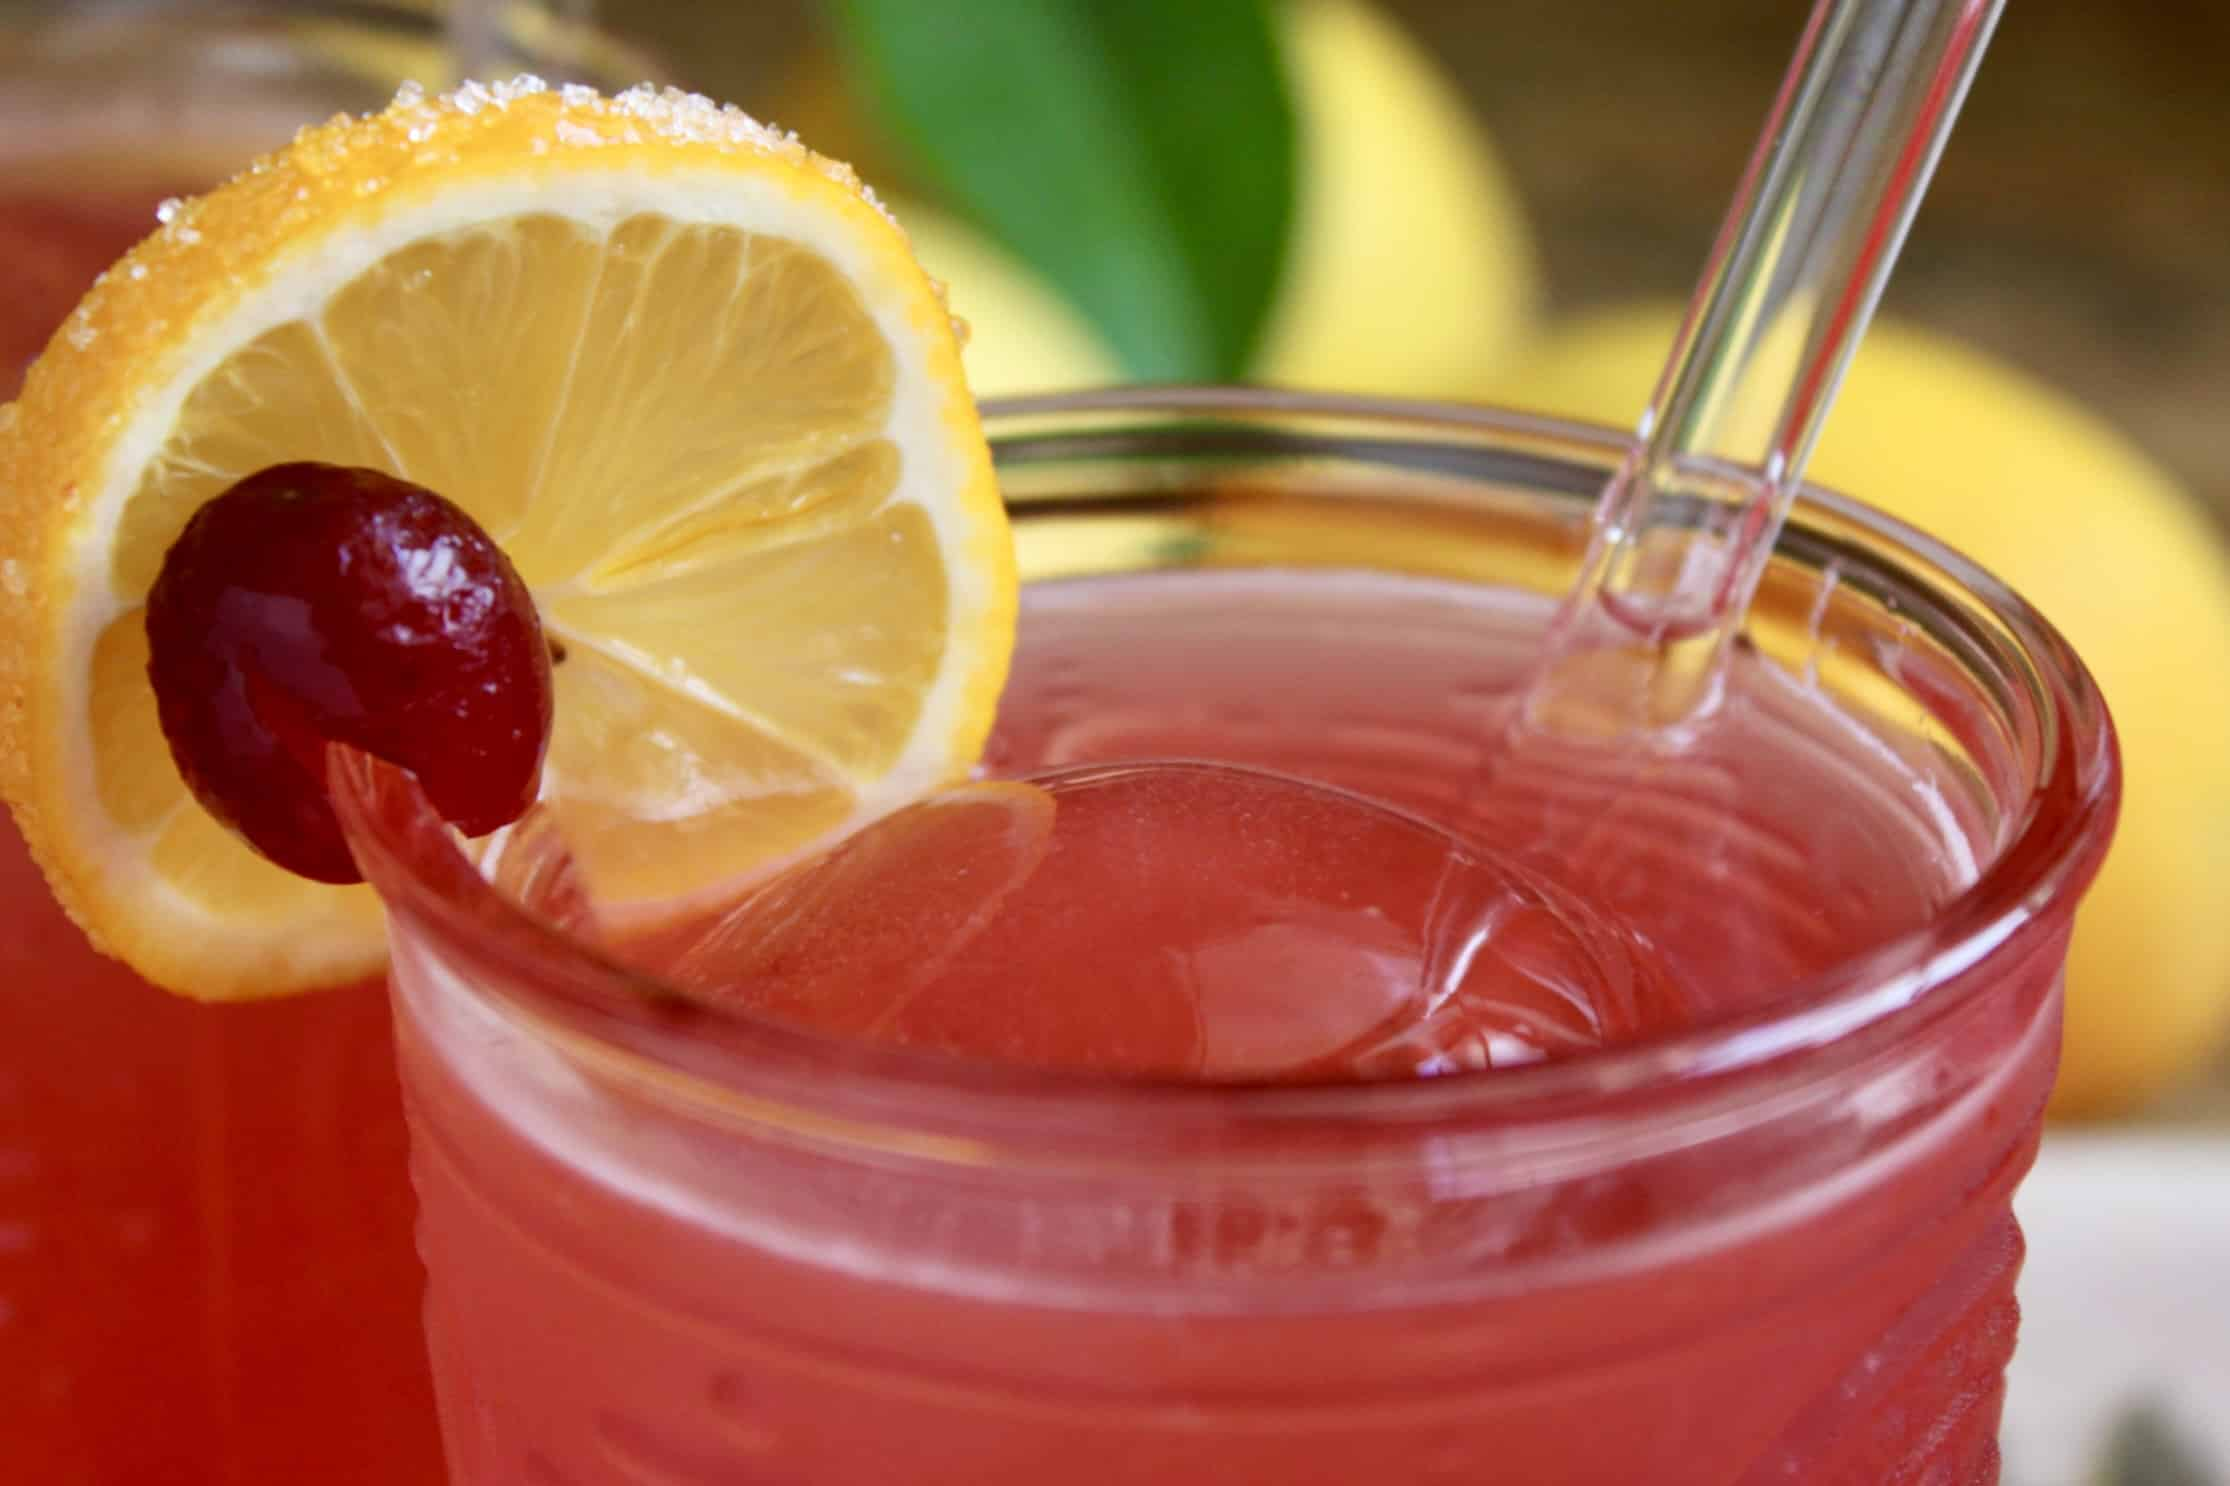 glass of cranberry lemonade with garnish and straw